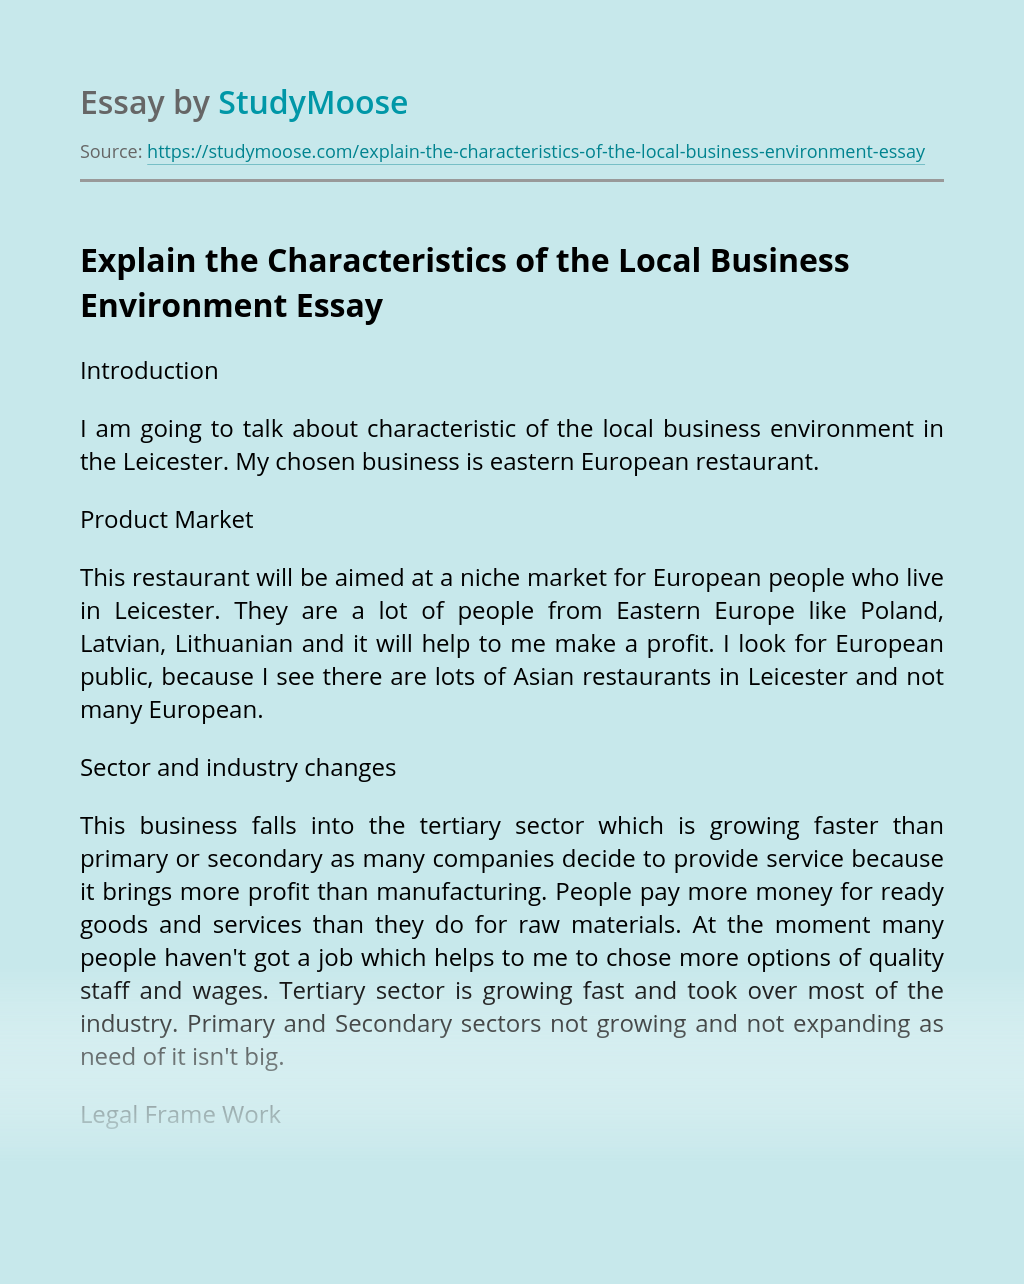 Explain the Characteristics of the Local Business Environment